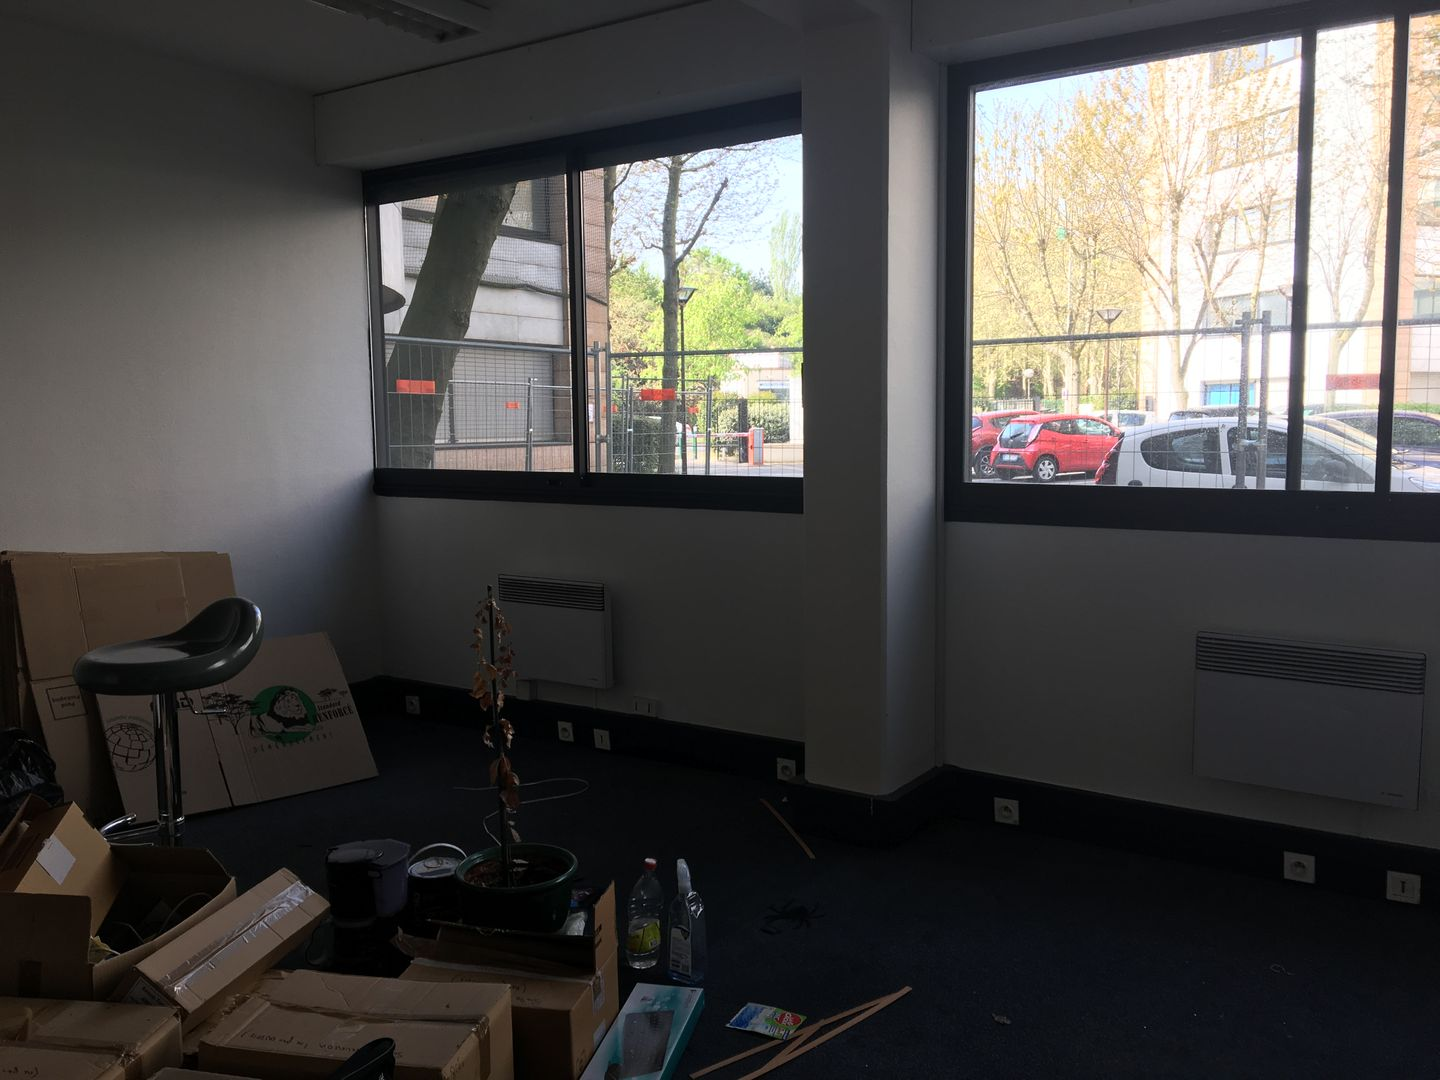 bureau de 109m², Noisy-le-Grand (Seine-Saint-Denis)